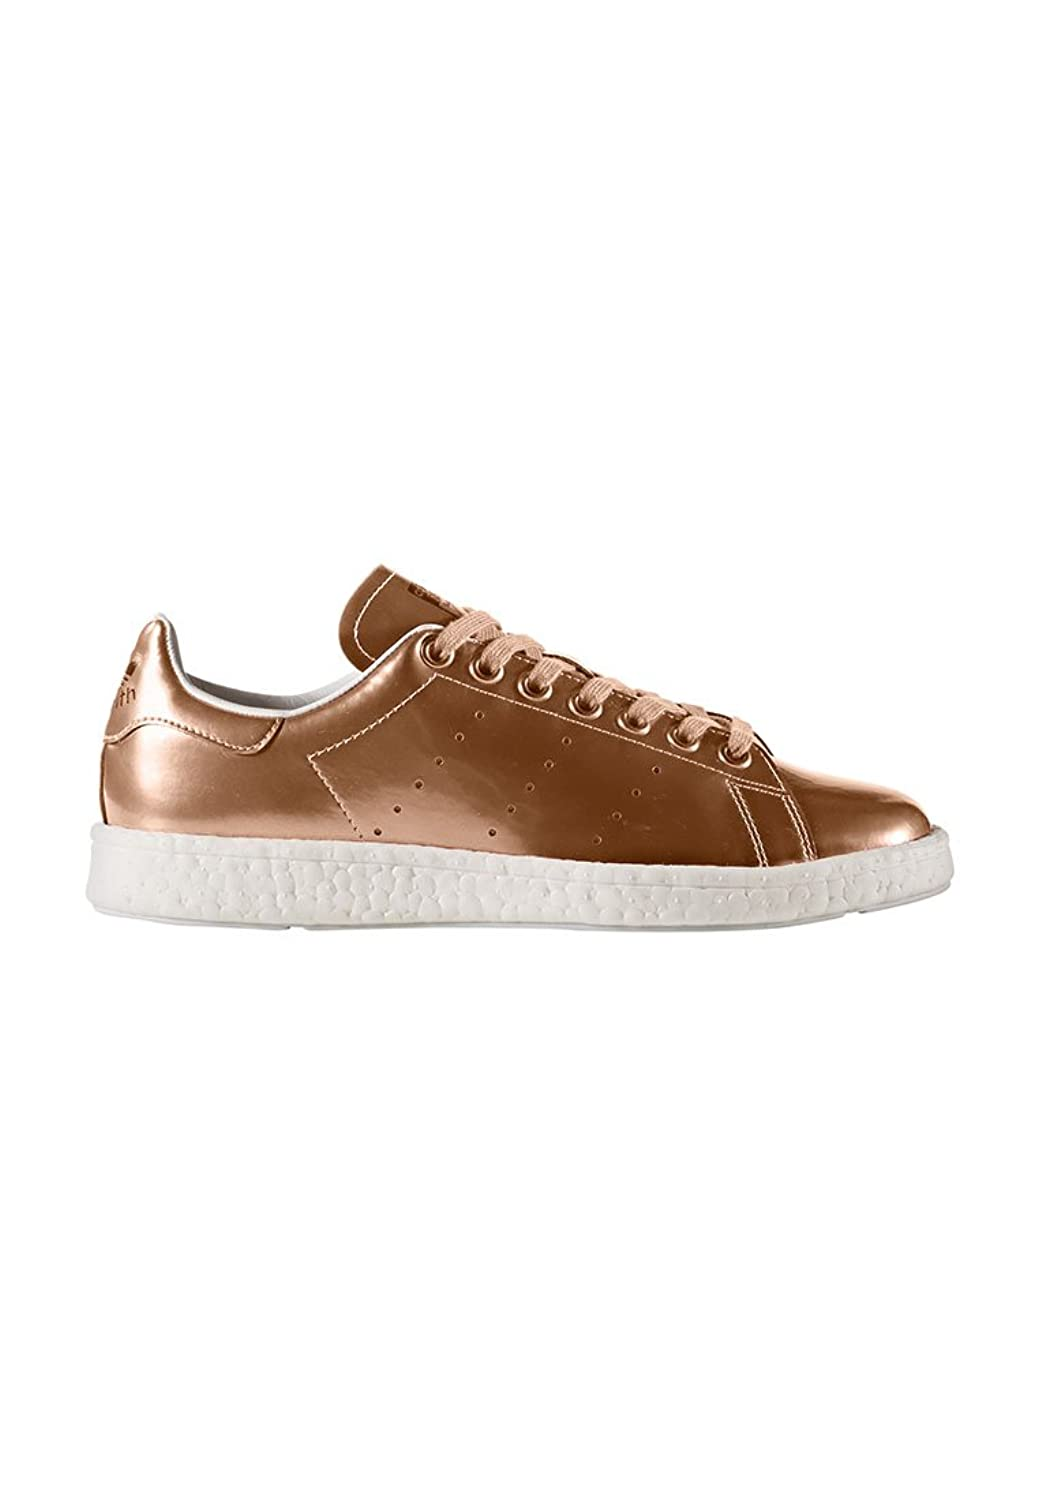 Adidas - Stan Smith Women Copper Metallic - BB0107